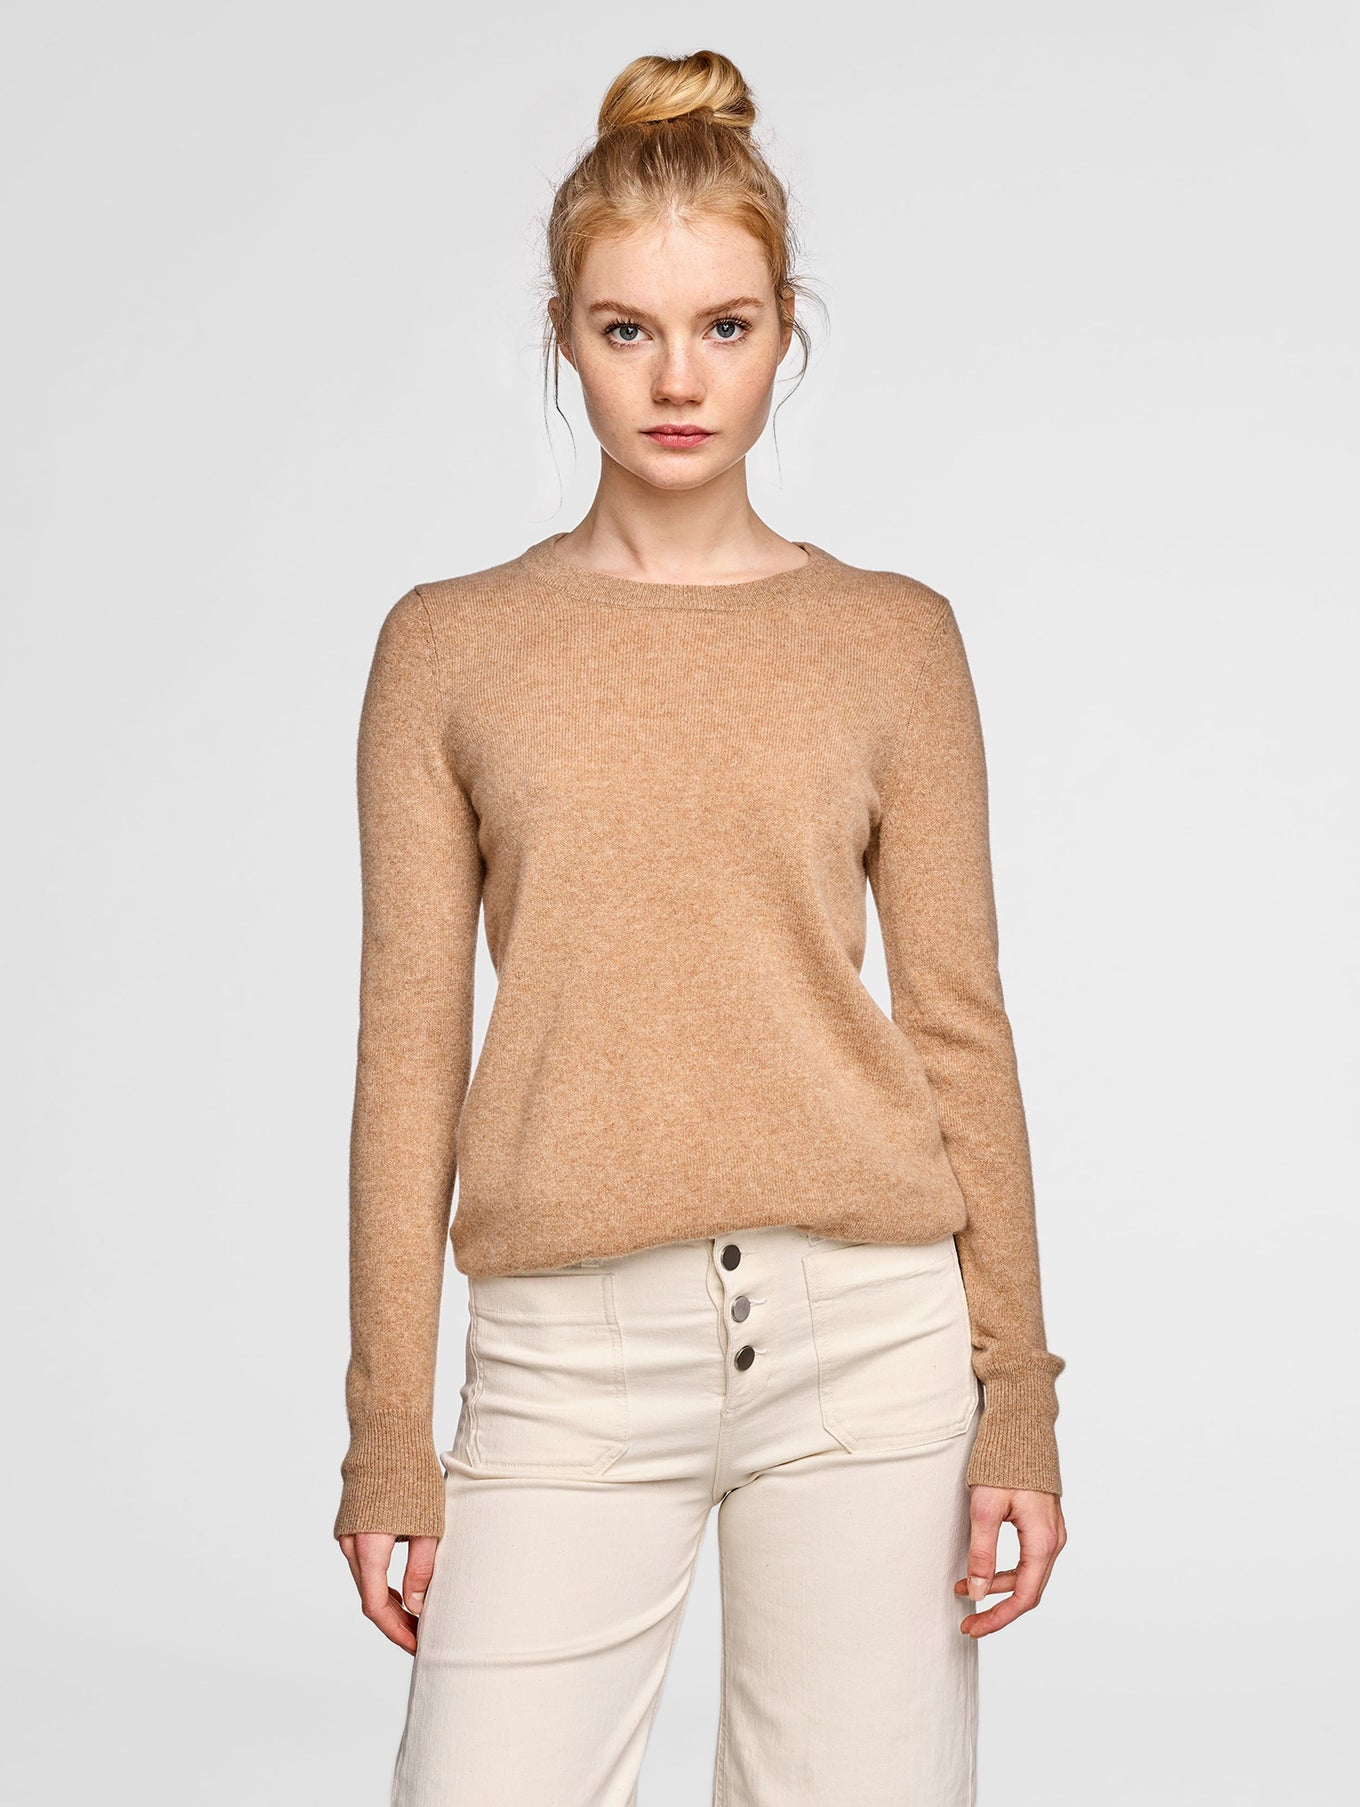 Essential Cashmere Crewneck - Camel Heather - Image 2